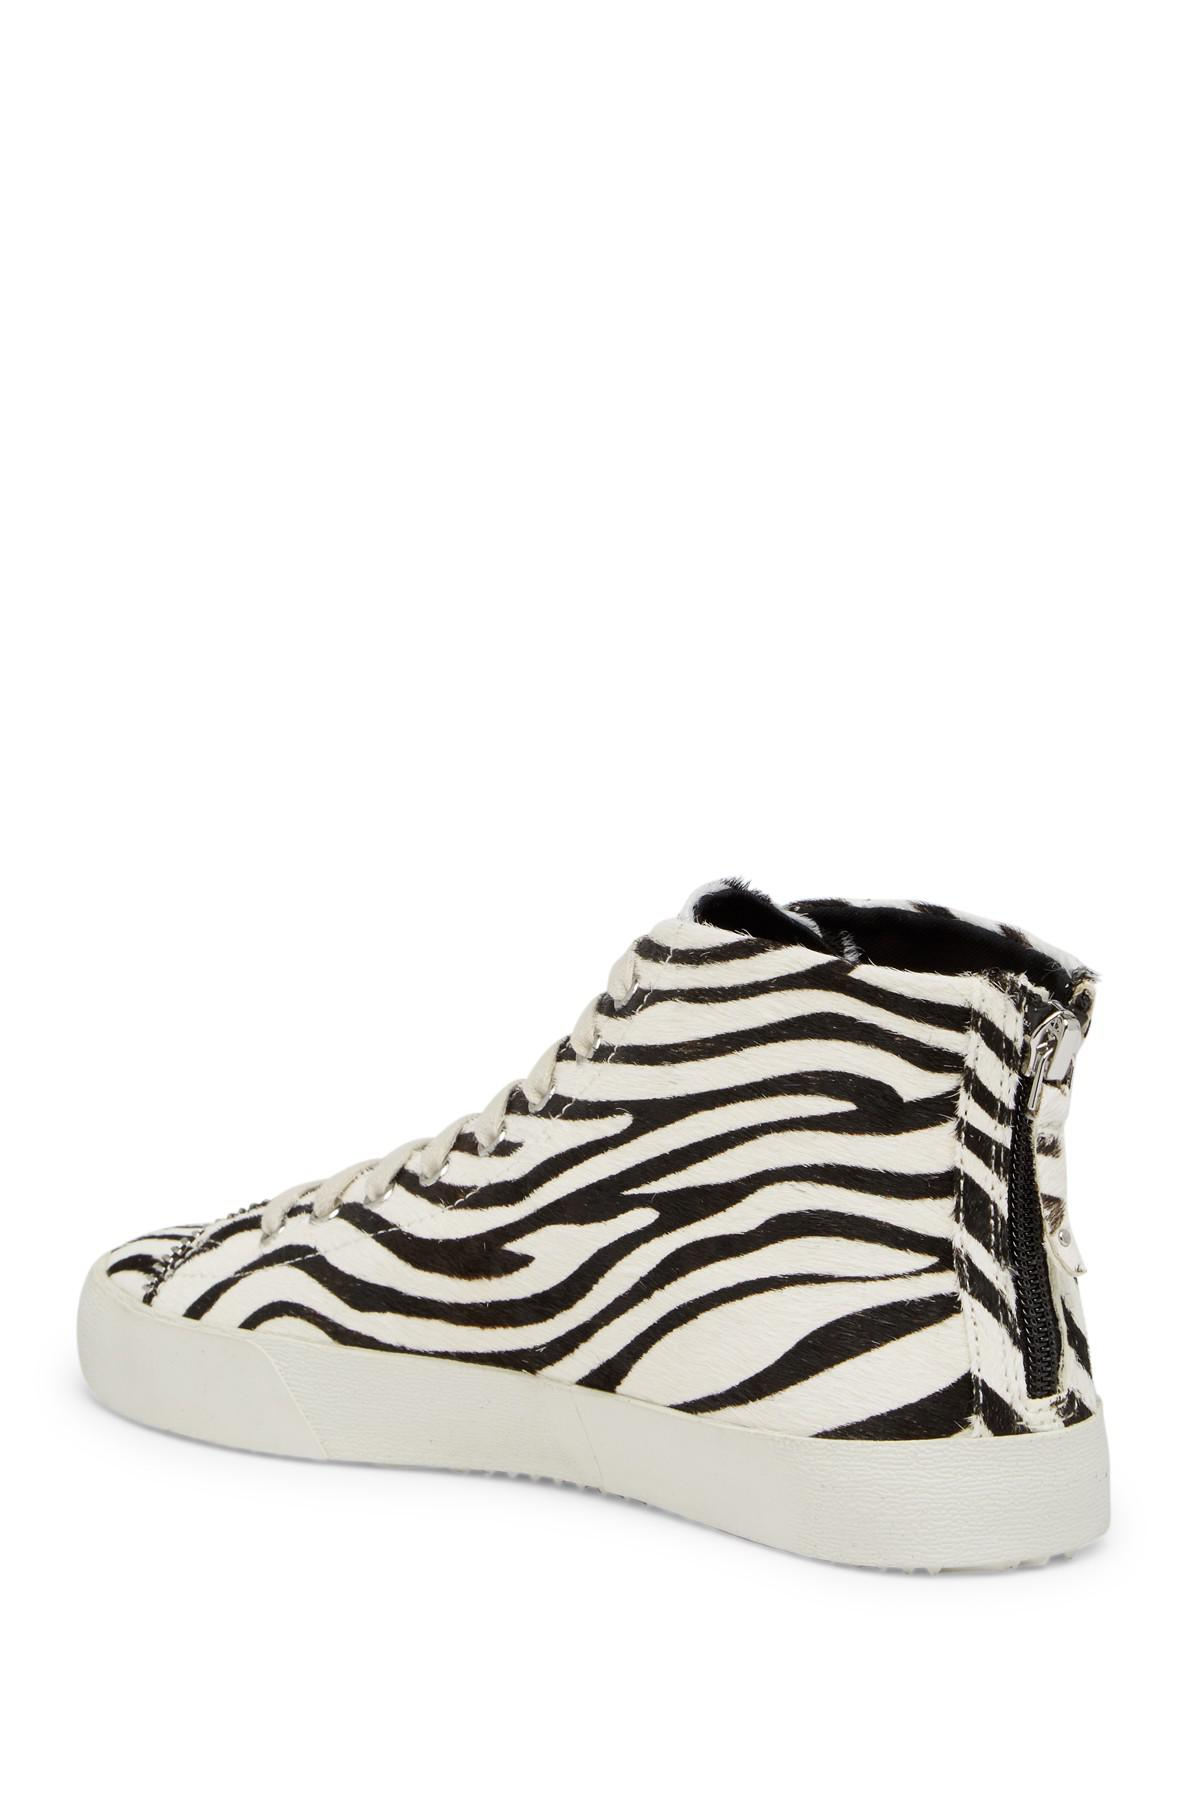 Rebecca Minkoff Zaina Too Genuine Calf Hair Mid Sneaker